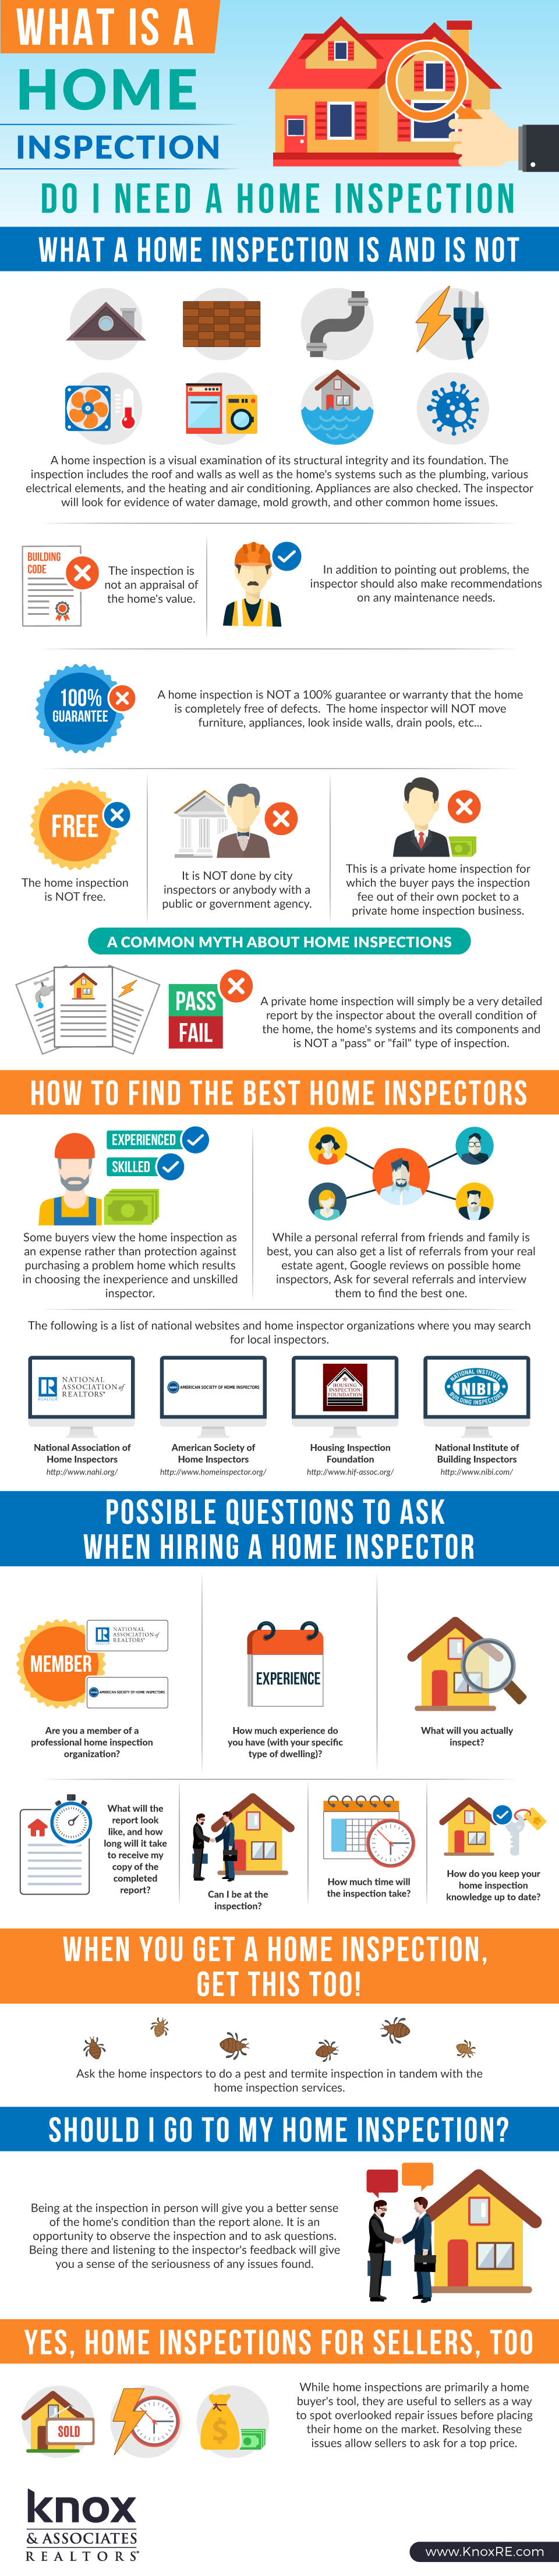 home inspection cost, checklist